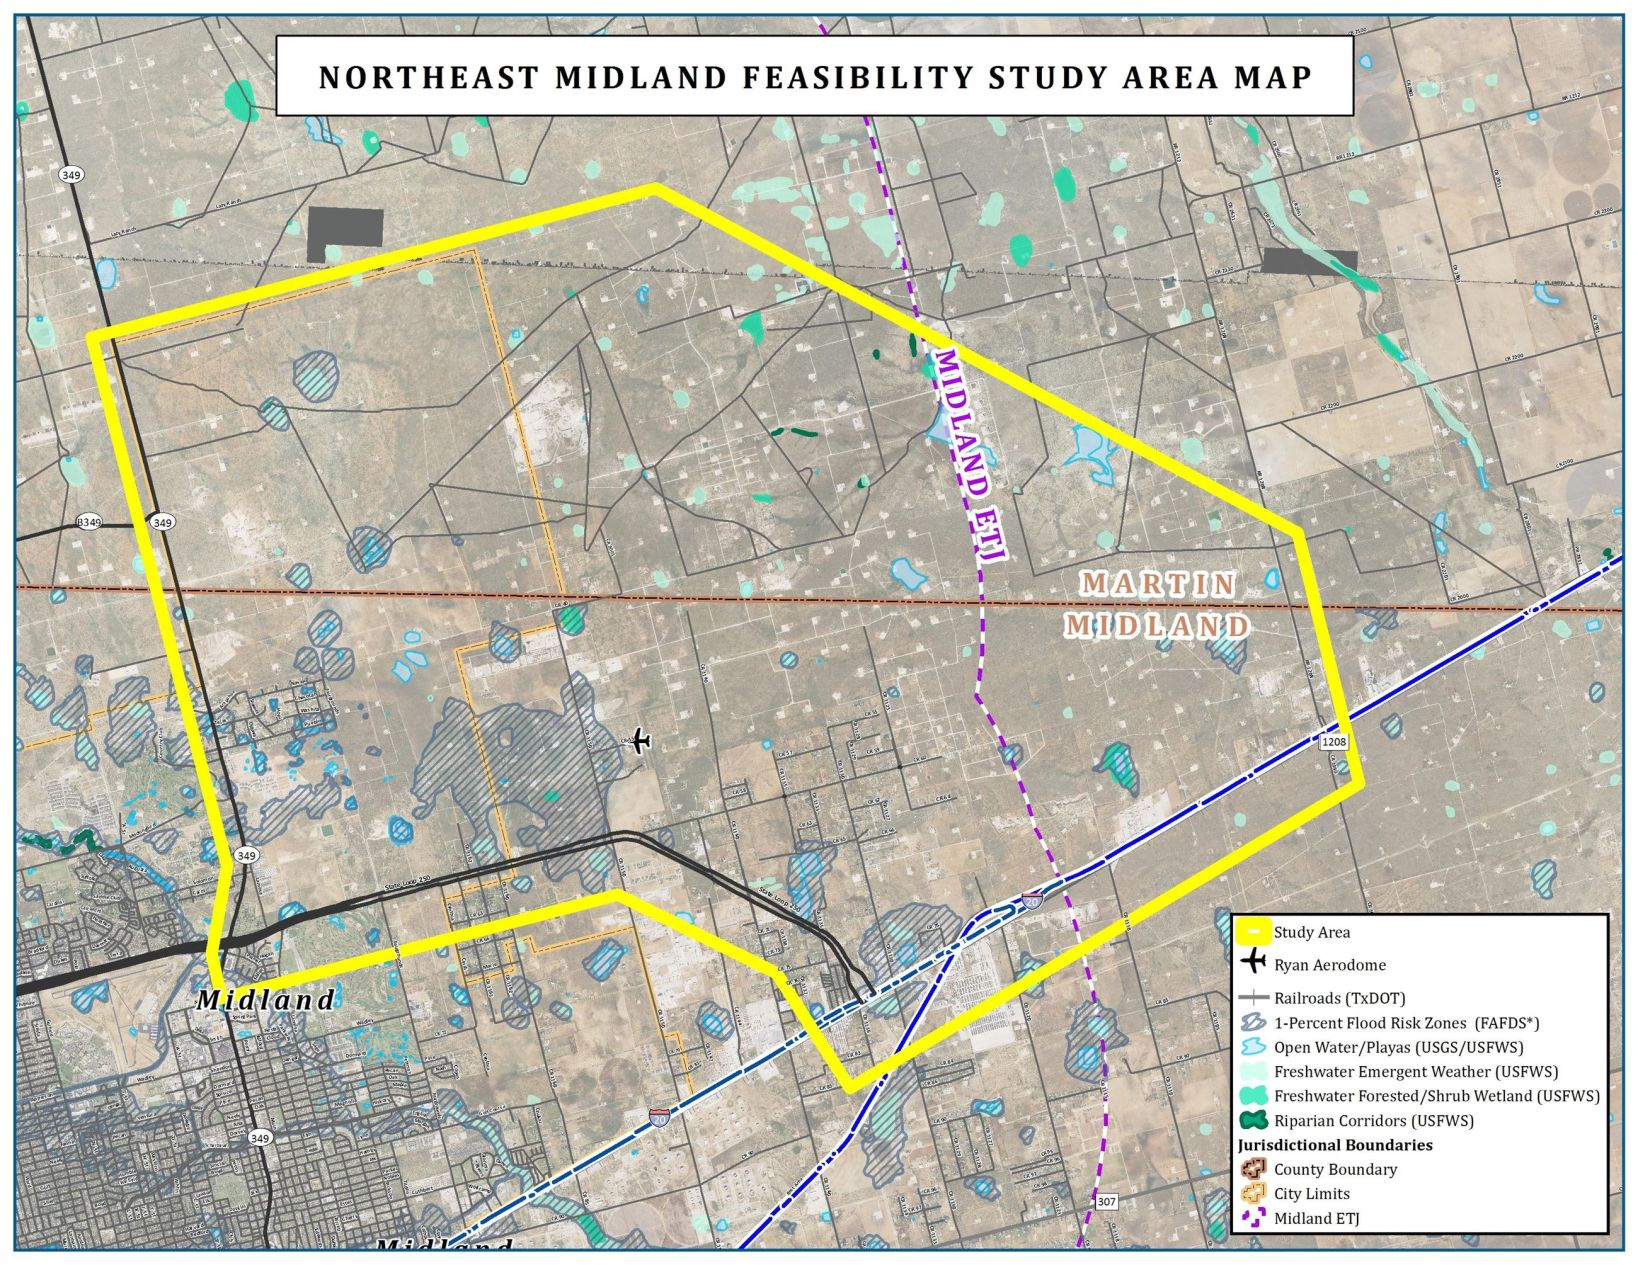 Sights Turn To Northeast Midland For Future Development - Midland - Map Of Midland Texas And Surrounding Areas